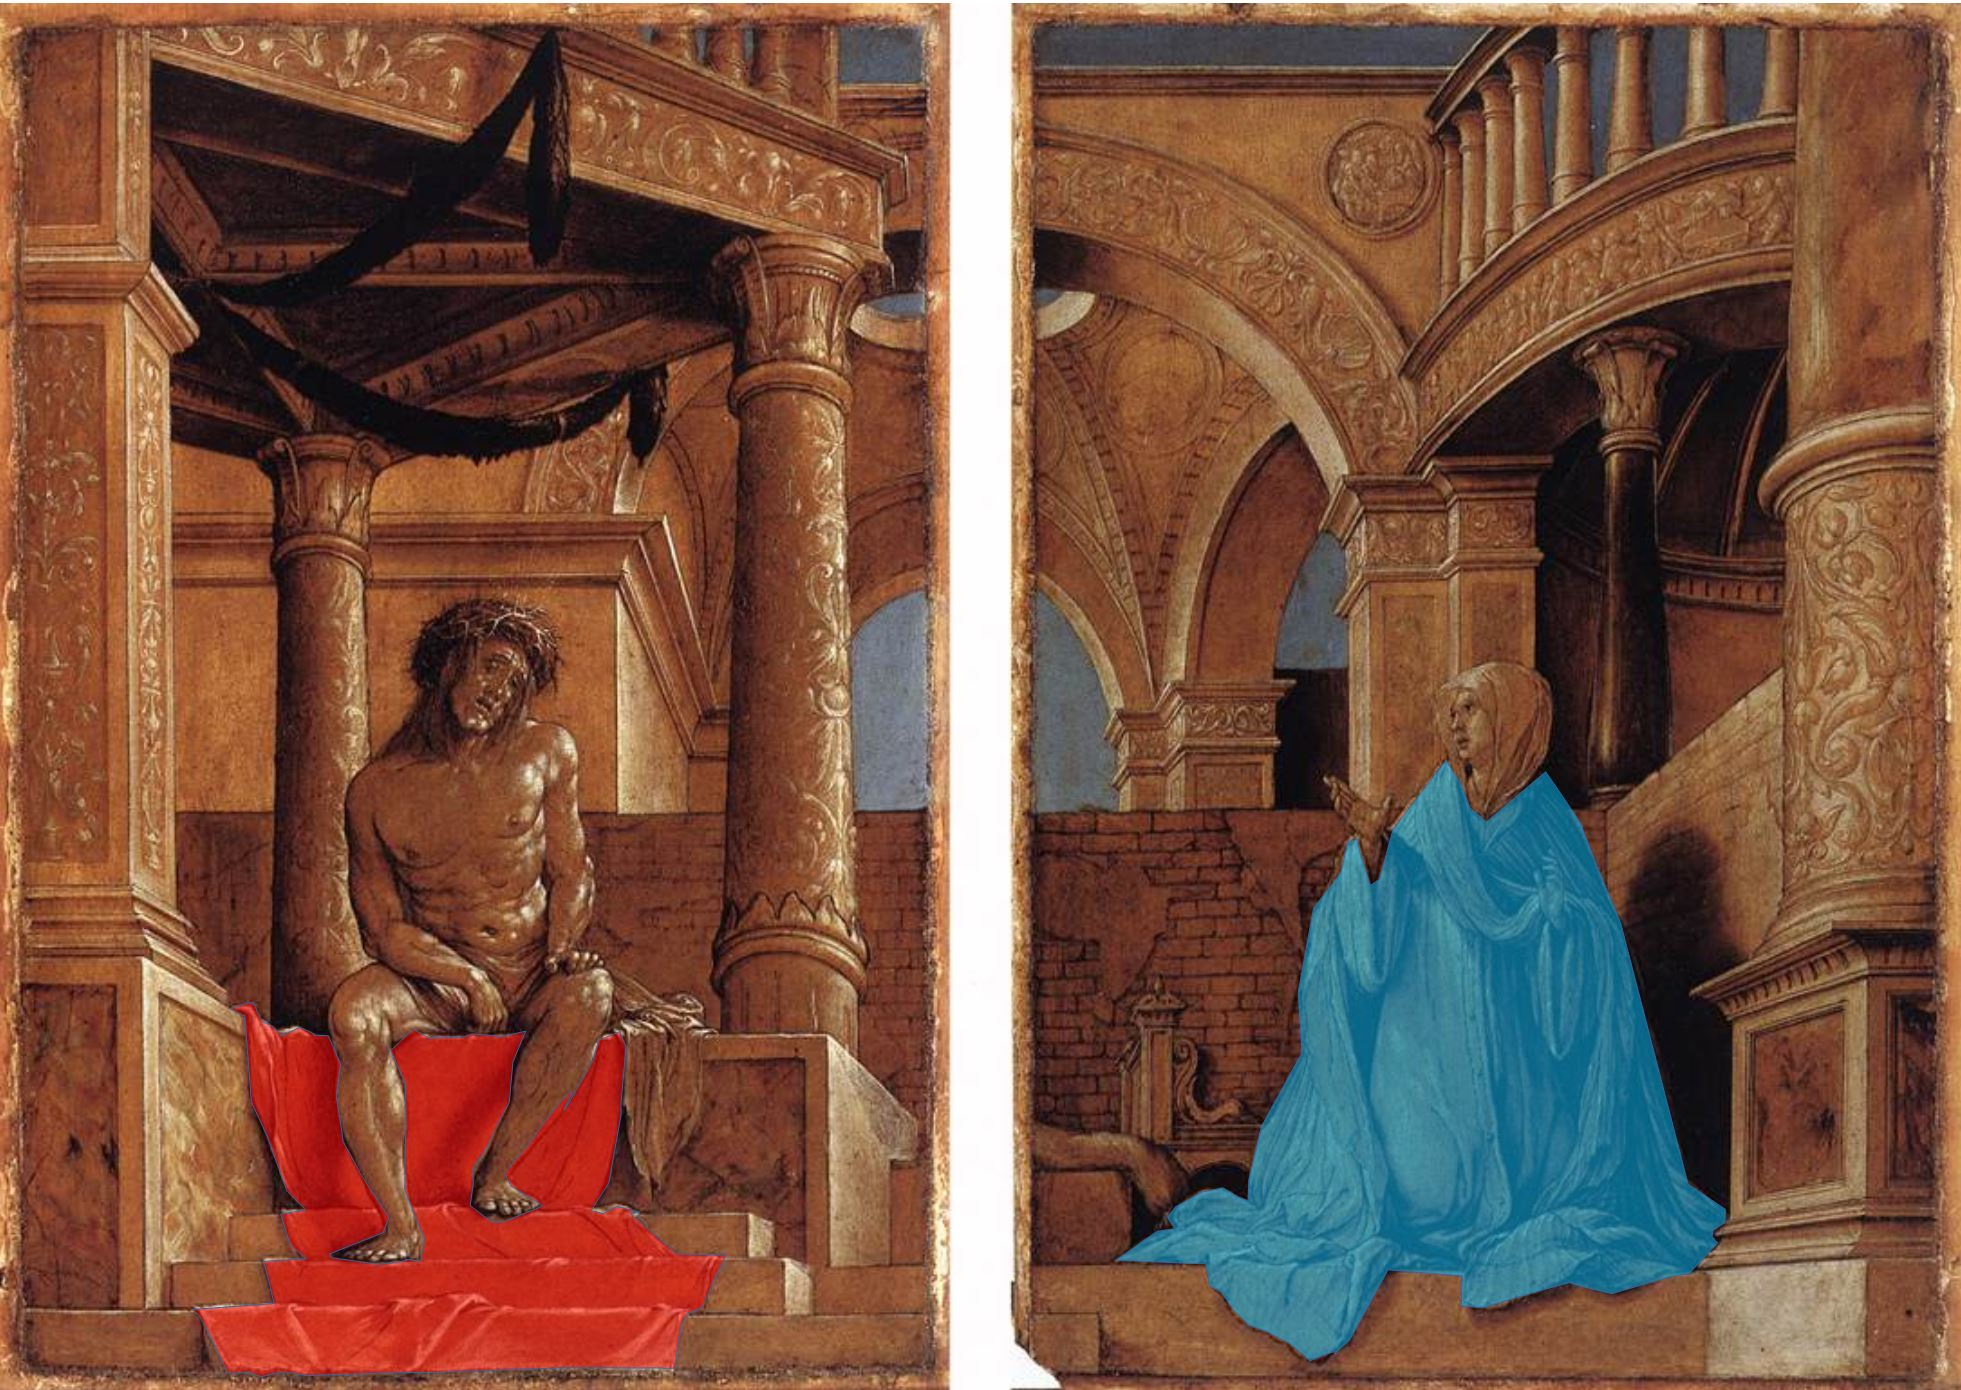 1521 hans-holbein diptych-with-christ-and-the-mater-dolorosa Kunstmuseum, Offentliche Kunstsammlung, Basel schema